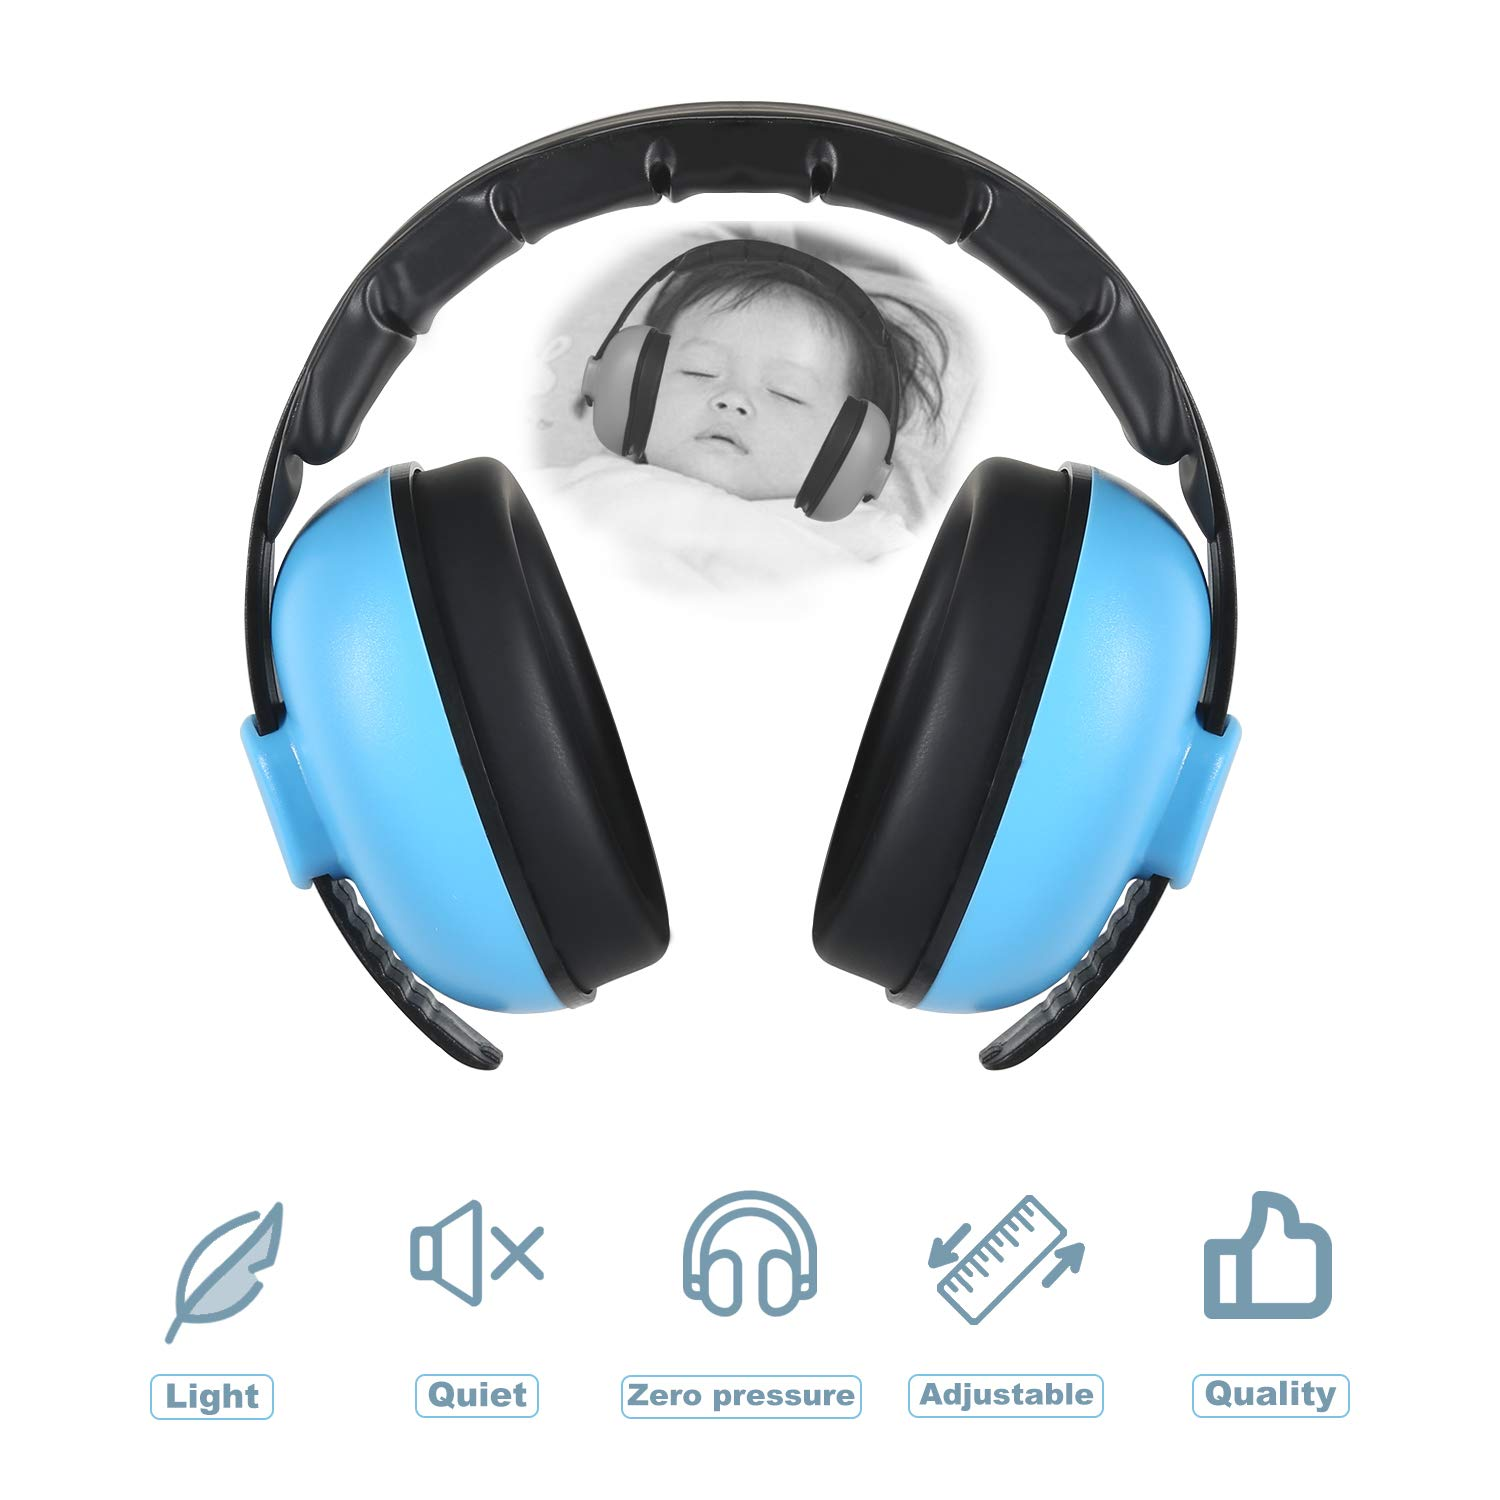 Baby Ear Protection, Hearing Noise Muffs Headphones Waterproof Sound with Airplane Flight Racing Travel Shooting for 0-18 Months Kids Baby Toddler Infant Newborn